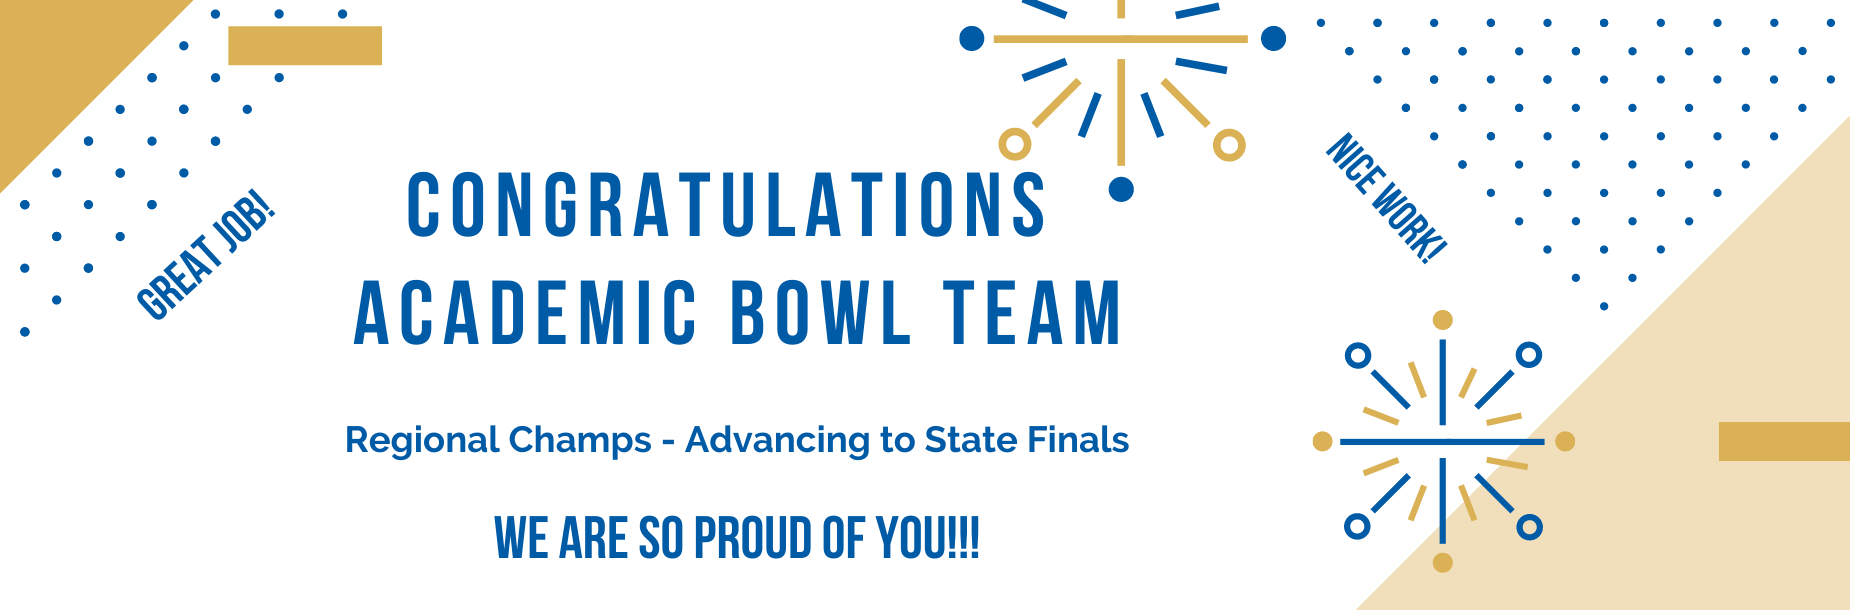 Academic Bowl Team Congratulations for advancing to the state finals